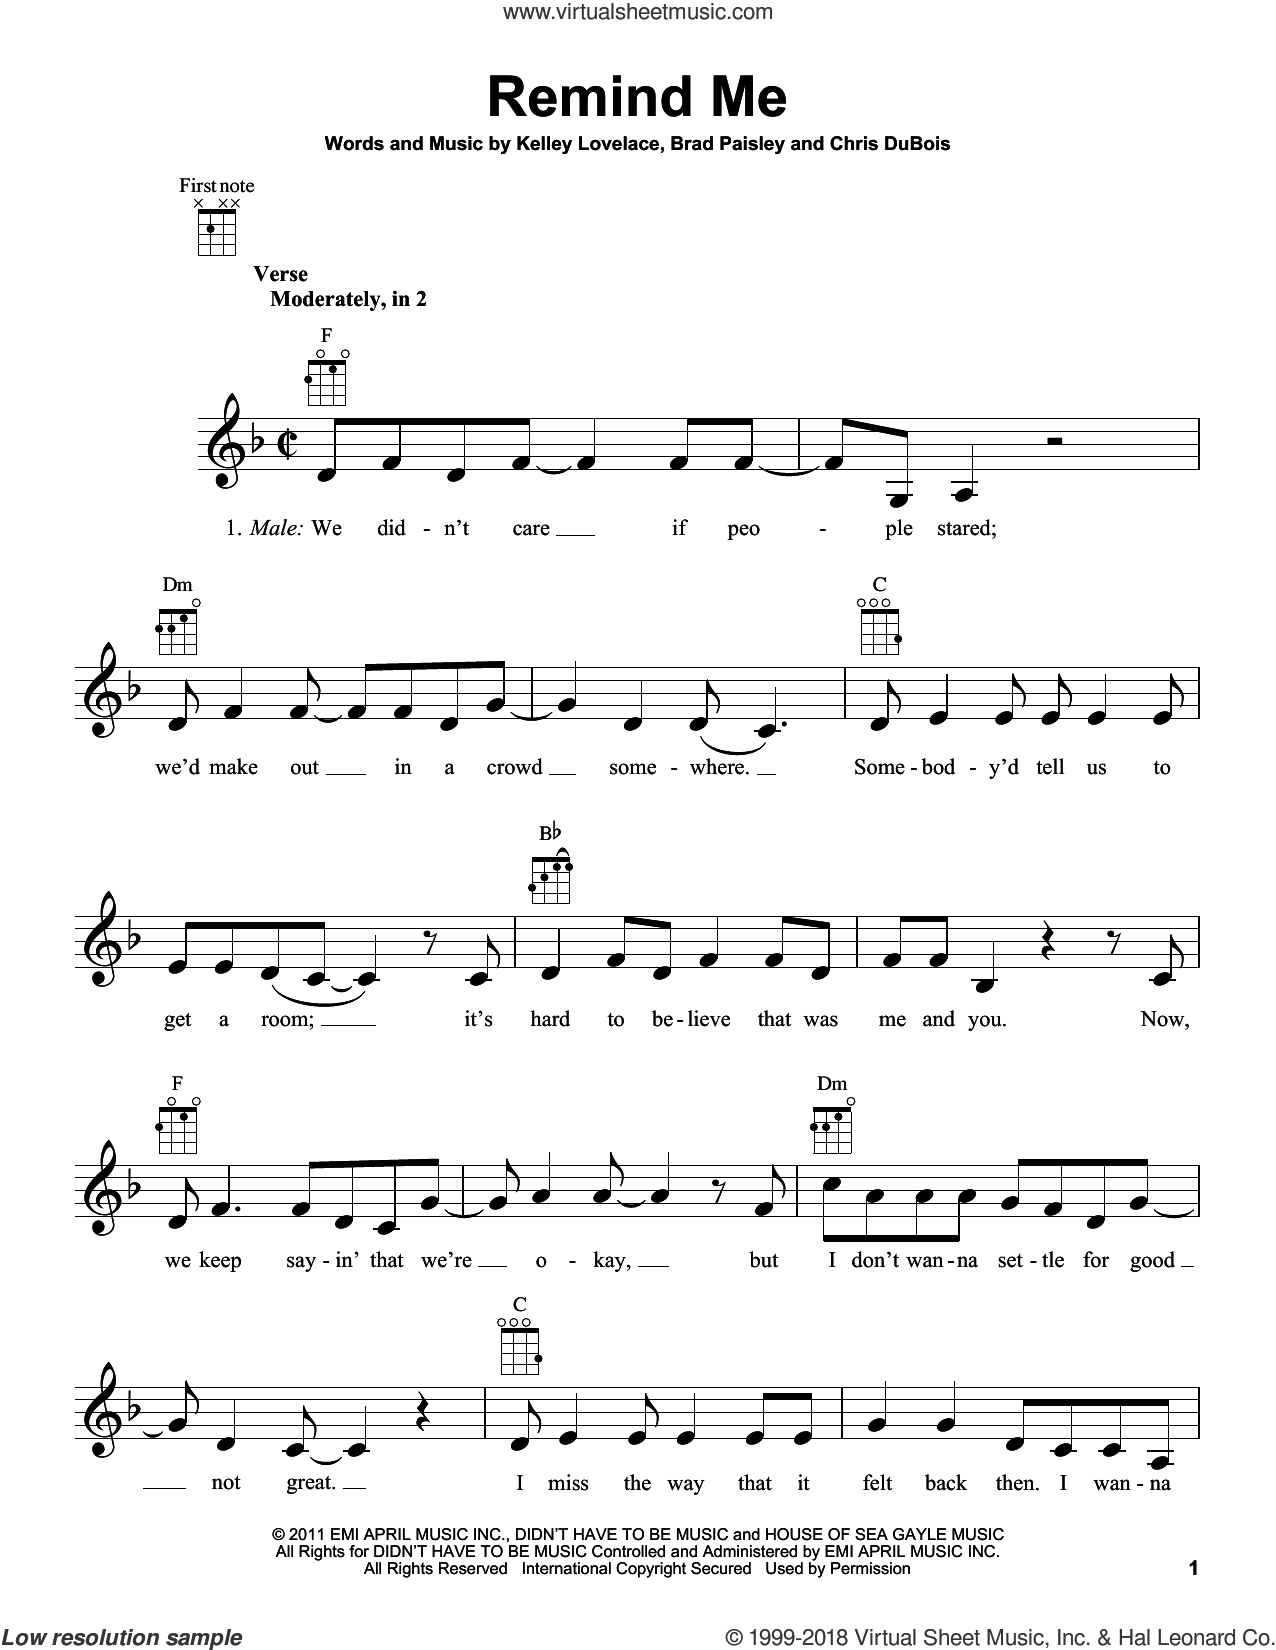 Remind Me sheet music for ukulele by Kelley Lovelace, Brad Paisley and Chris DuBois. Score Image Preview.